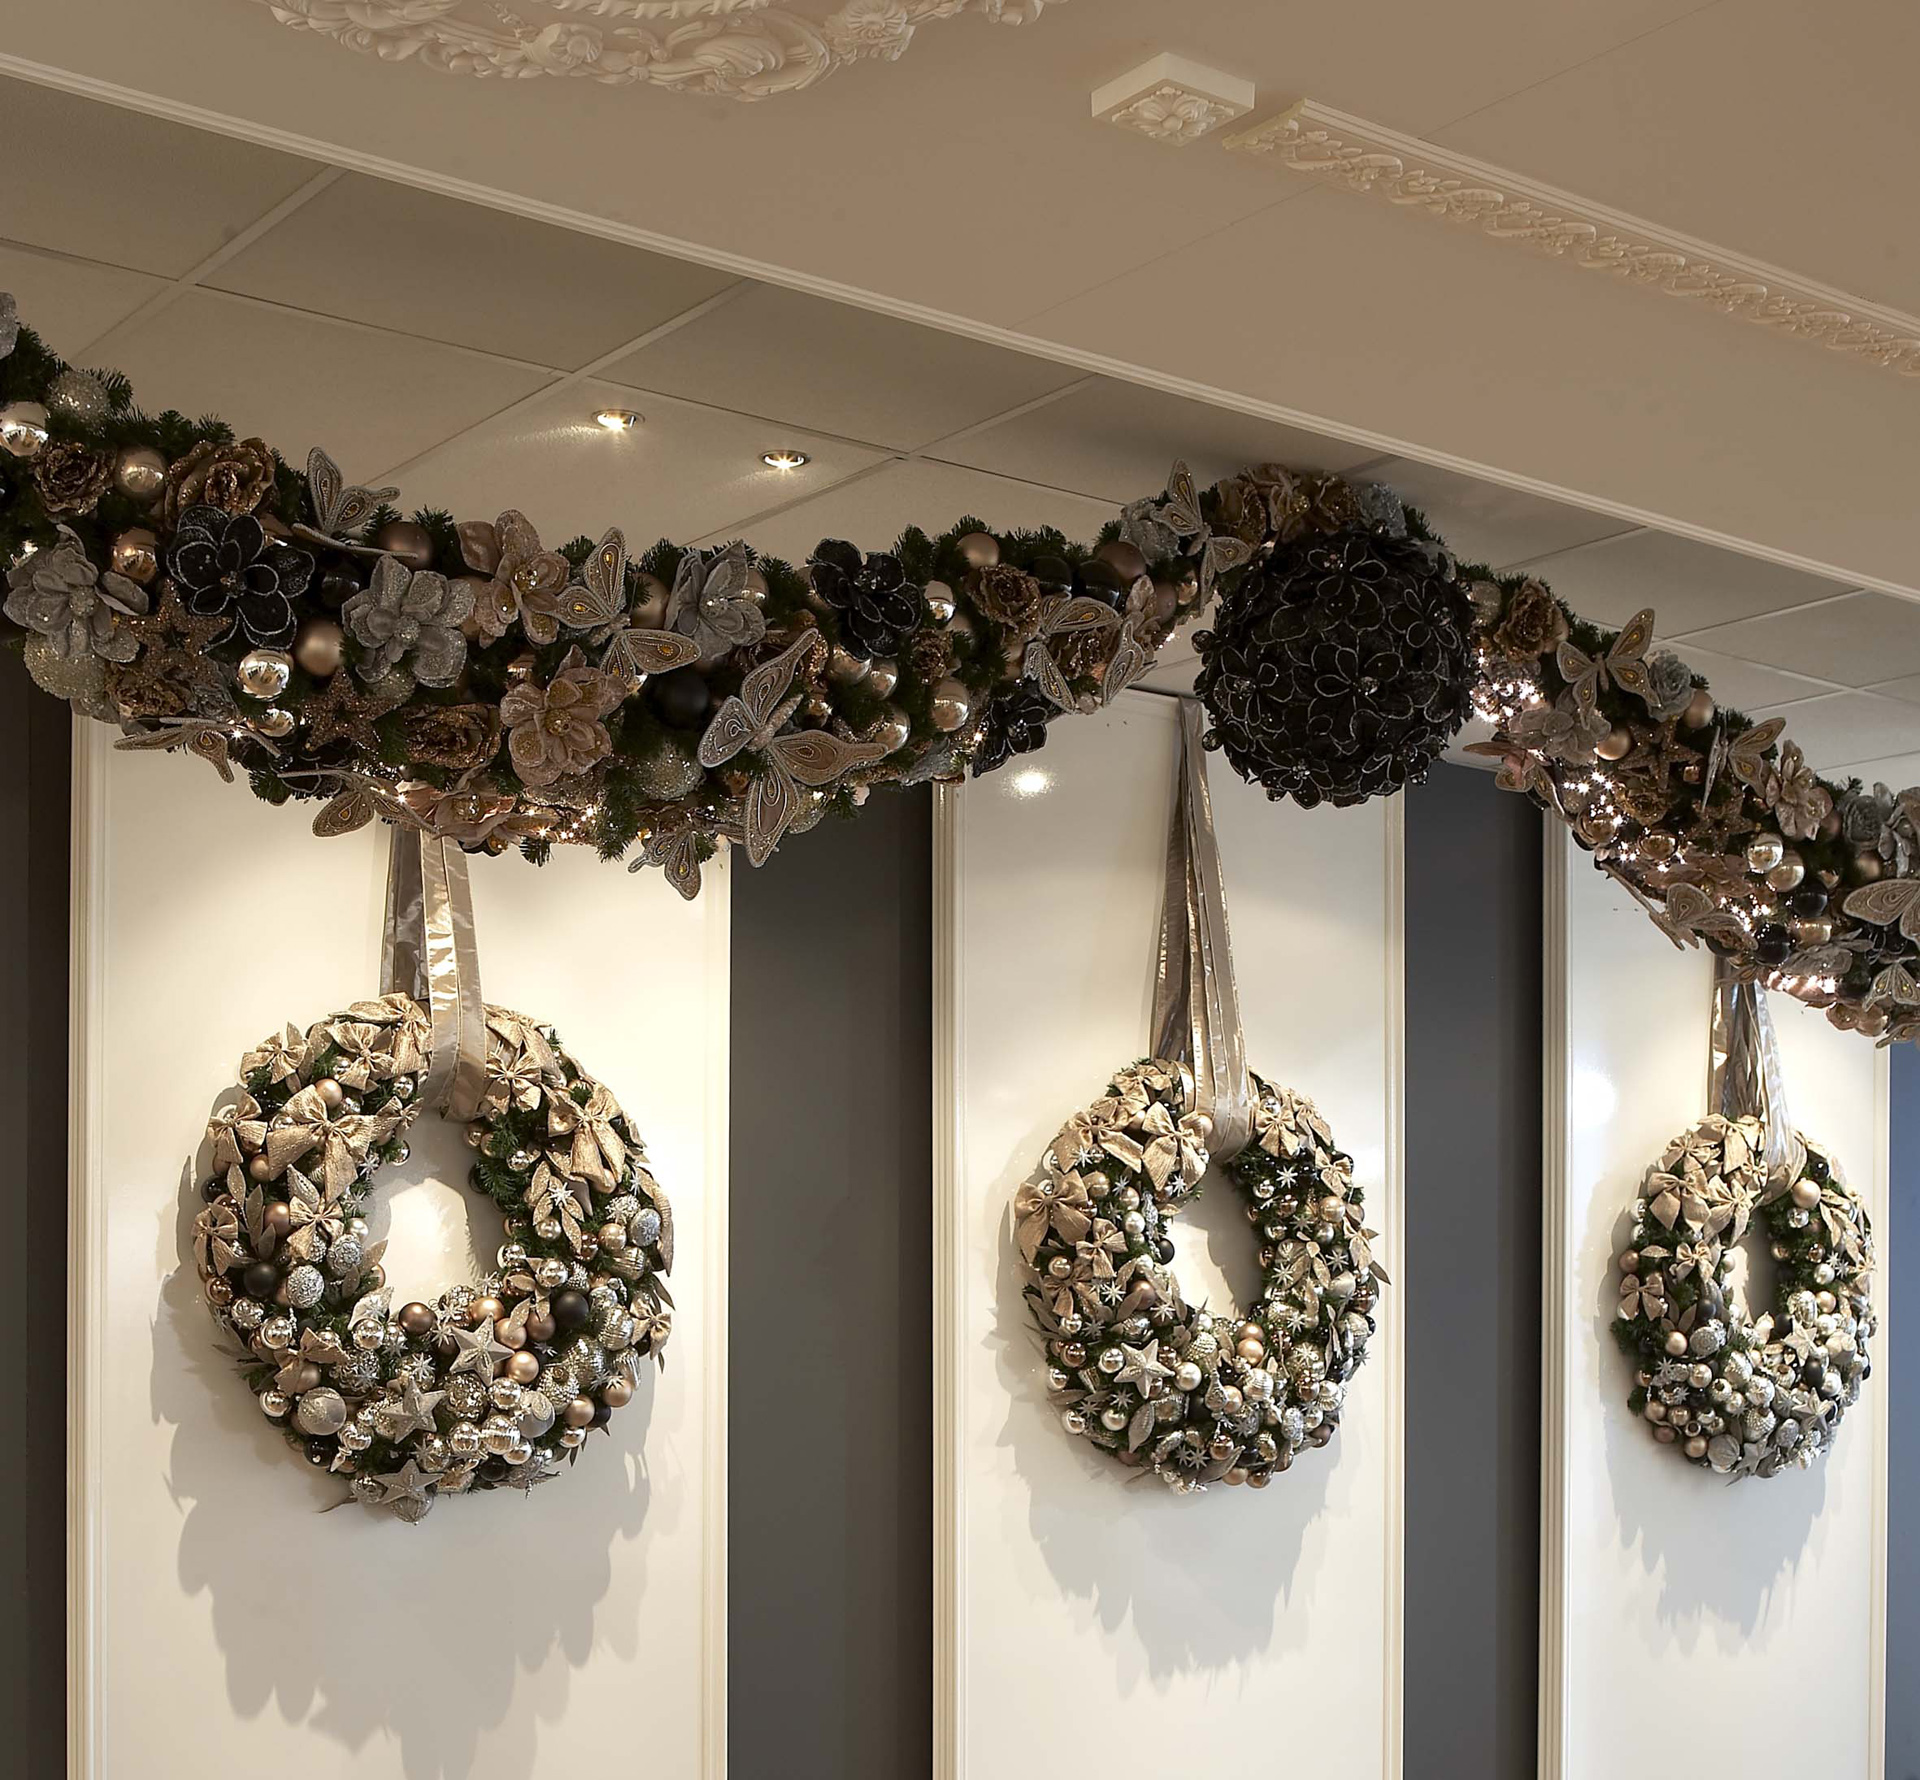 Christmas Decorations For Commercial Use Uk: From The Retail Sale